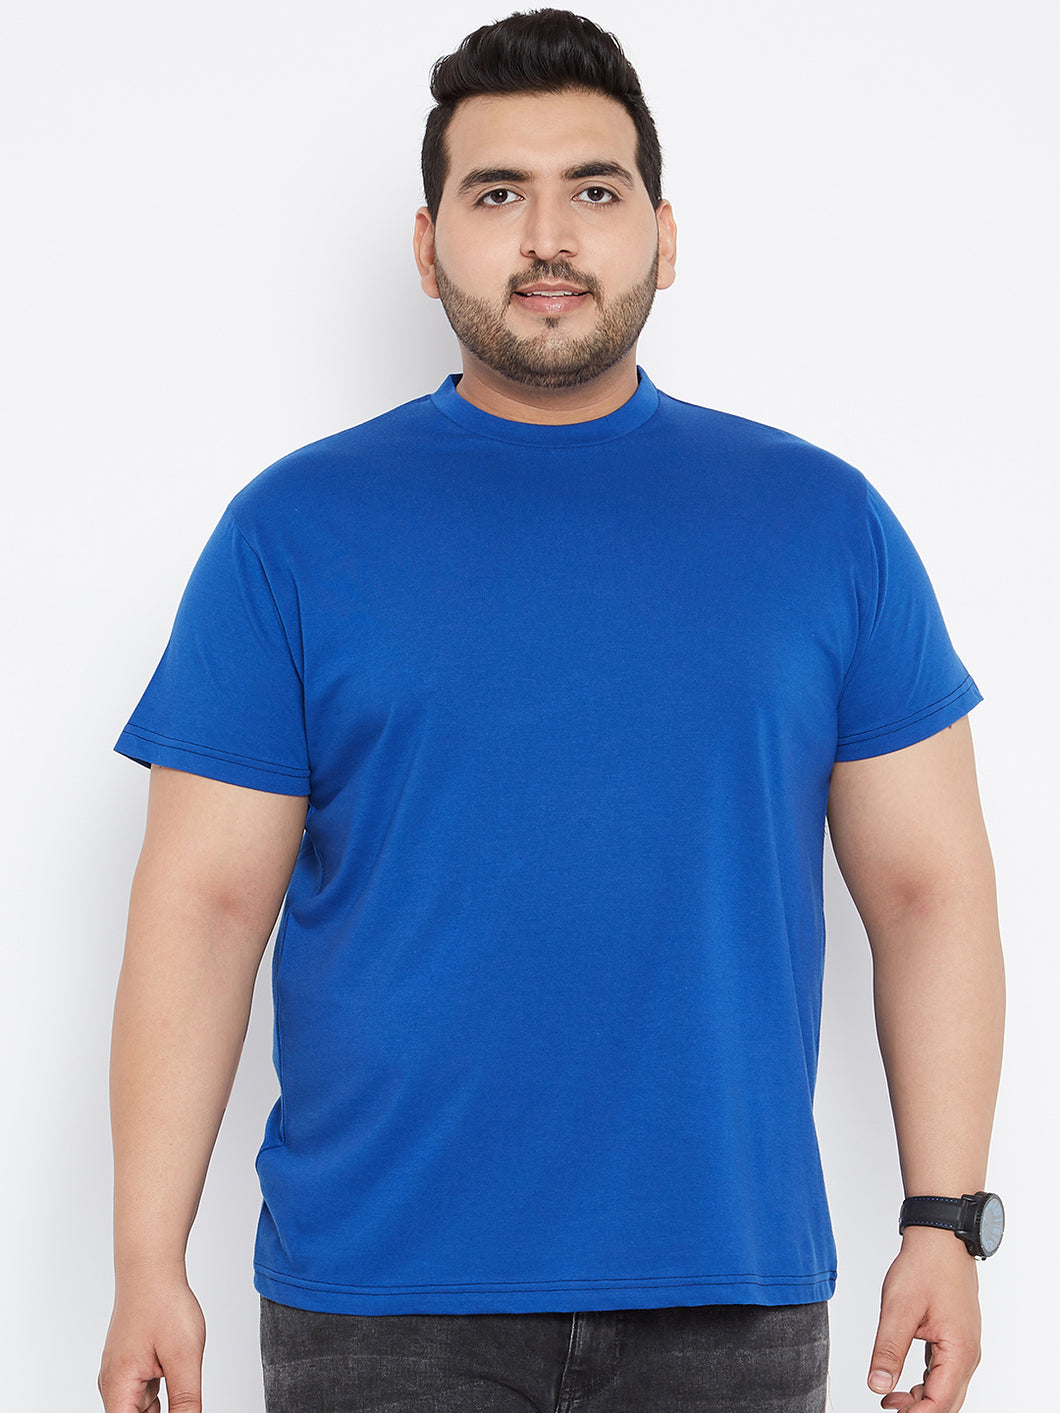 bigbanana Tony Solid Round Neck Tshirt in Royal Blue Color - Bigbanana